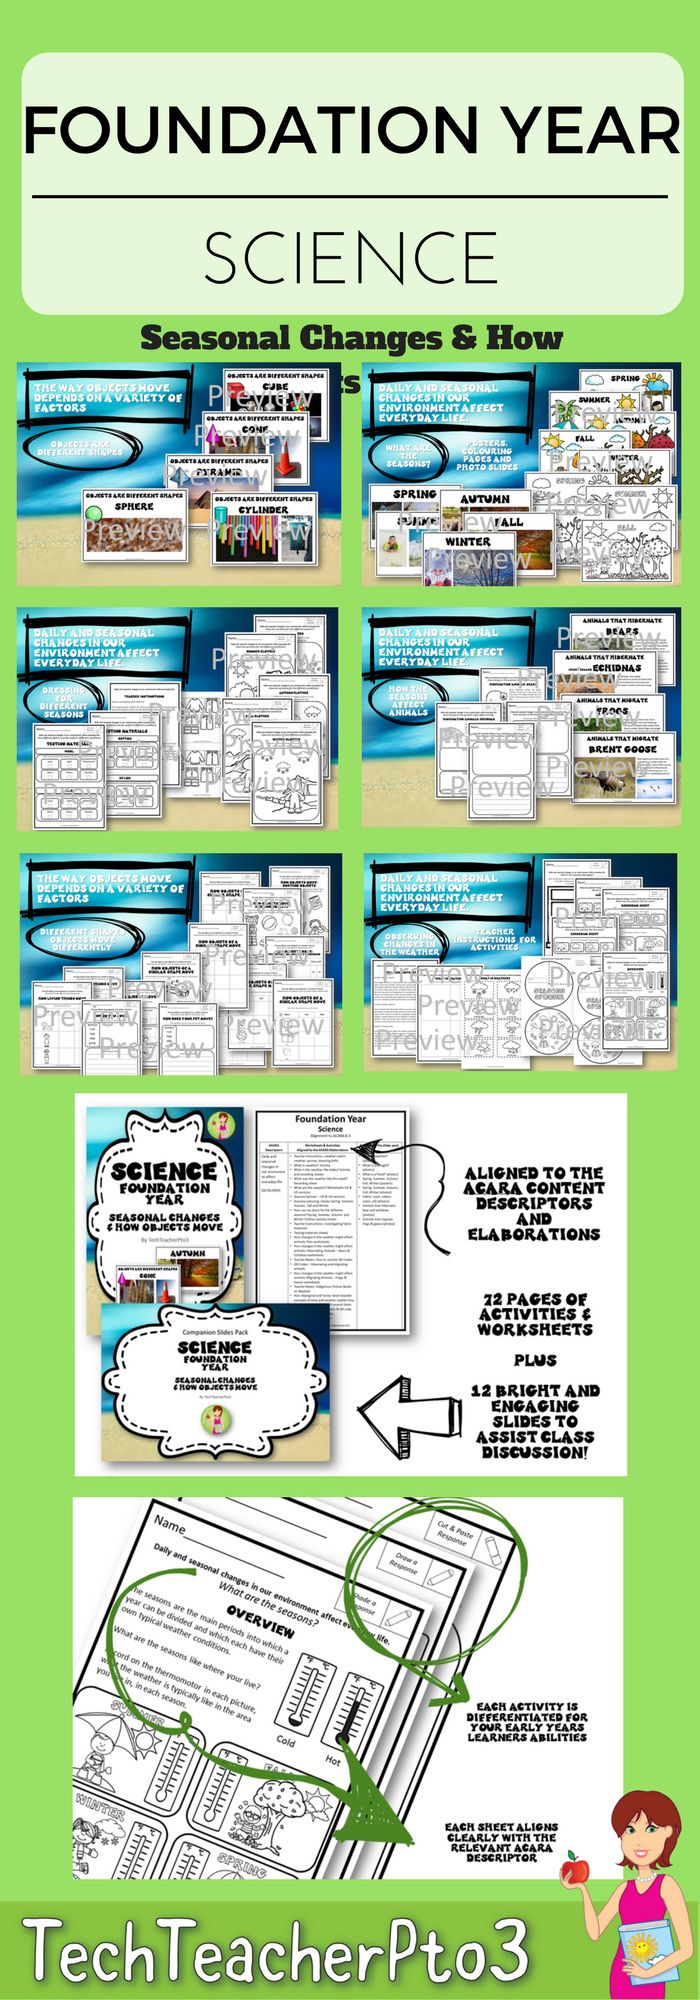 Contained in this pack is EVERYTHING you need to teach two of the content descriptors for Foundation Year Science to meet the Australian Curriculum Standards (ACARA): • Daily and seasonal changes in our environment affect everyday life • The way objects move depends on a variety of factors, including their size and shape Part One of this pack is available here Science Foundation Year Part One Living Things Have Needs & Material Properties In this pack you will find 92 pages of activities…